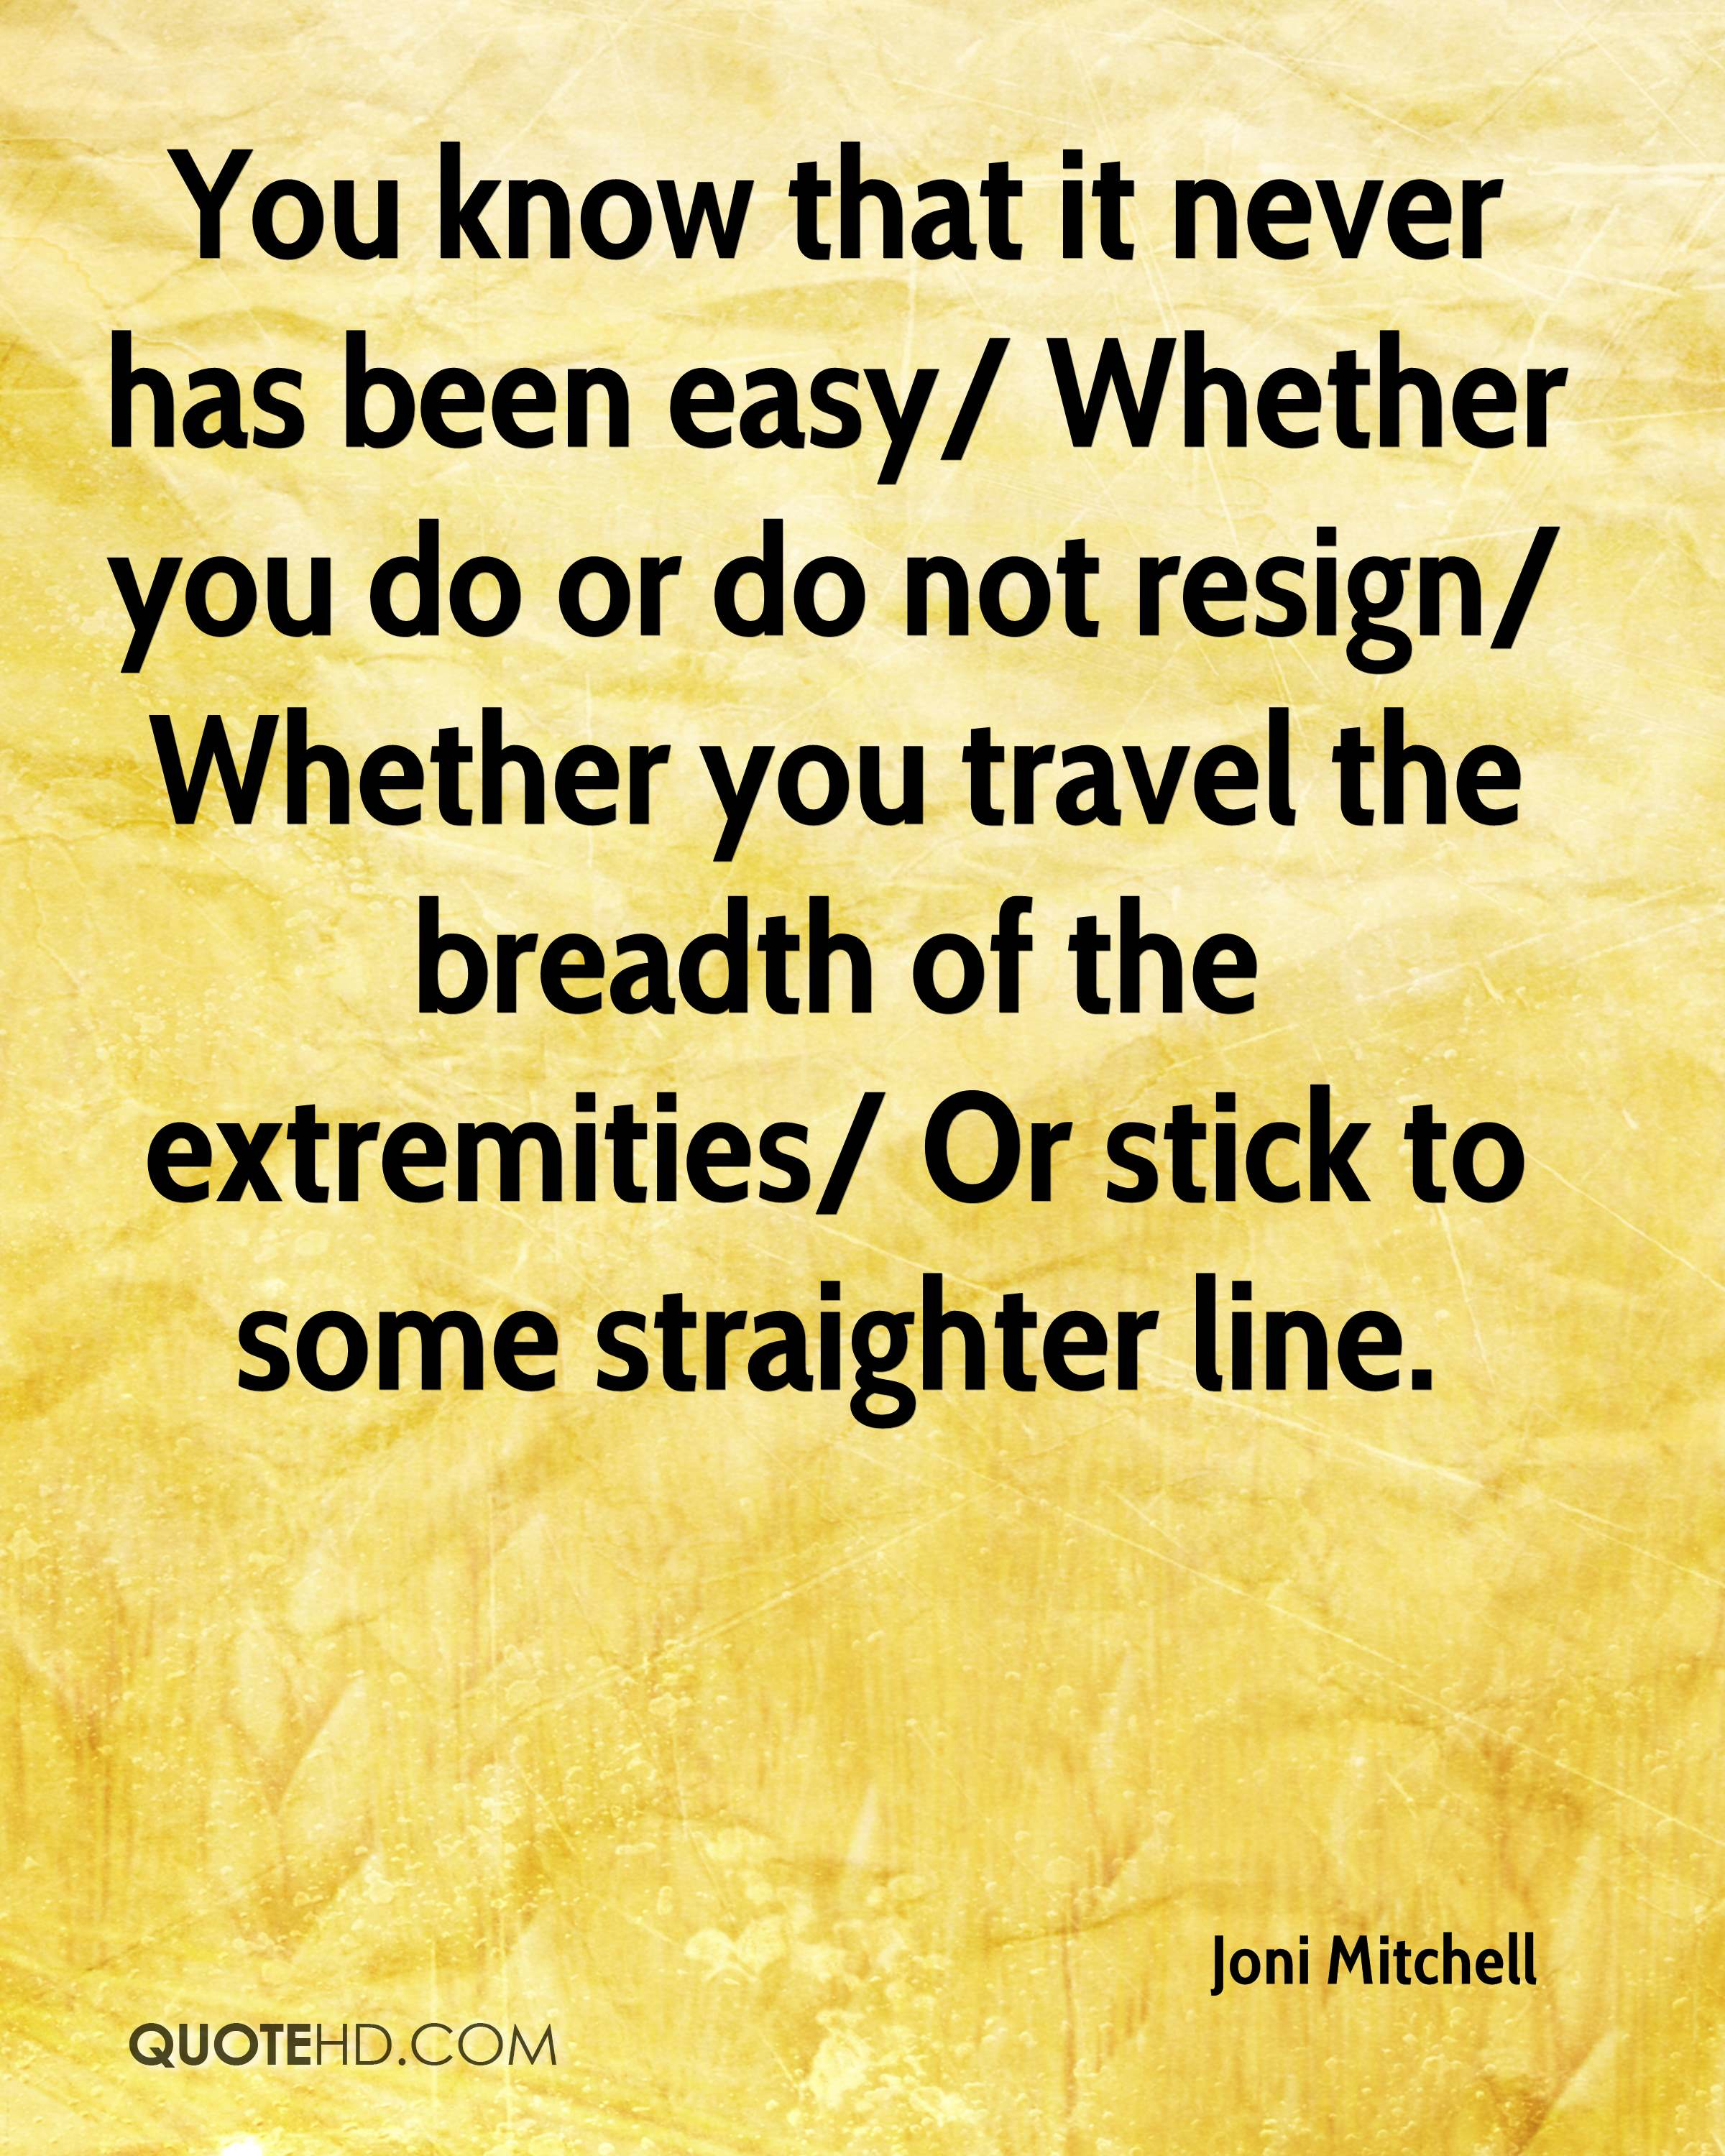 You know that it never has been easy/ Whether you do or do not resign/ Whether you travel the breadth of the extremities/ Or stick to some straighter line.